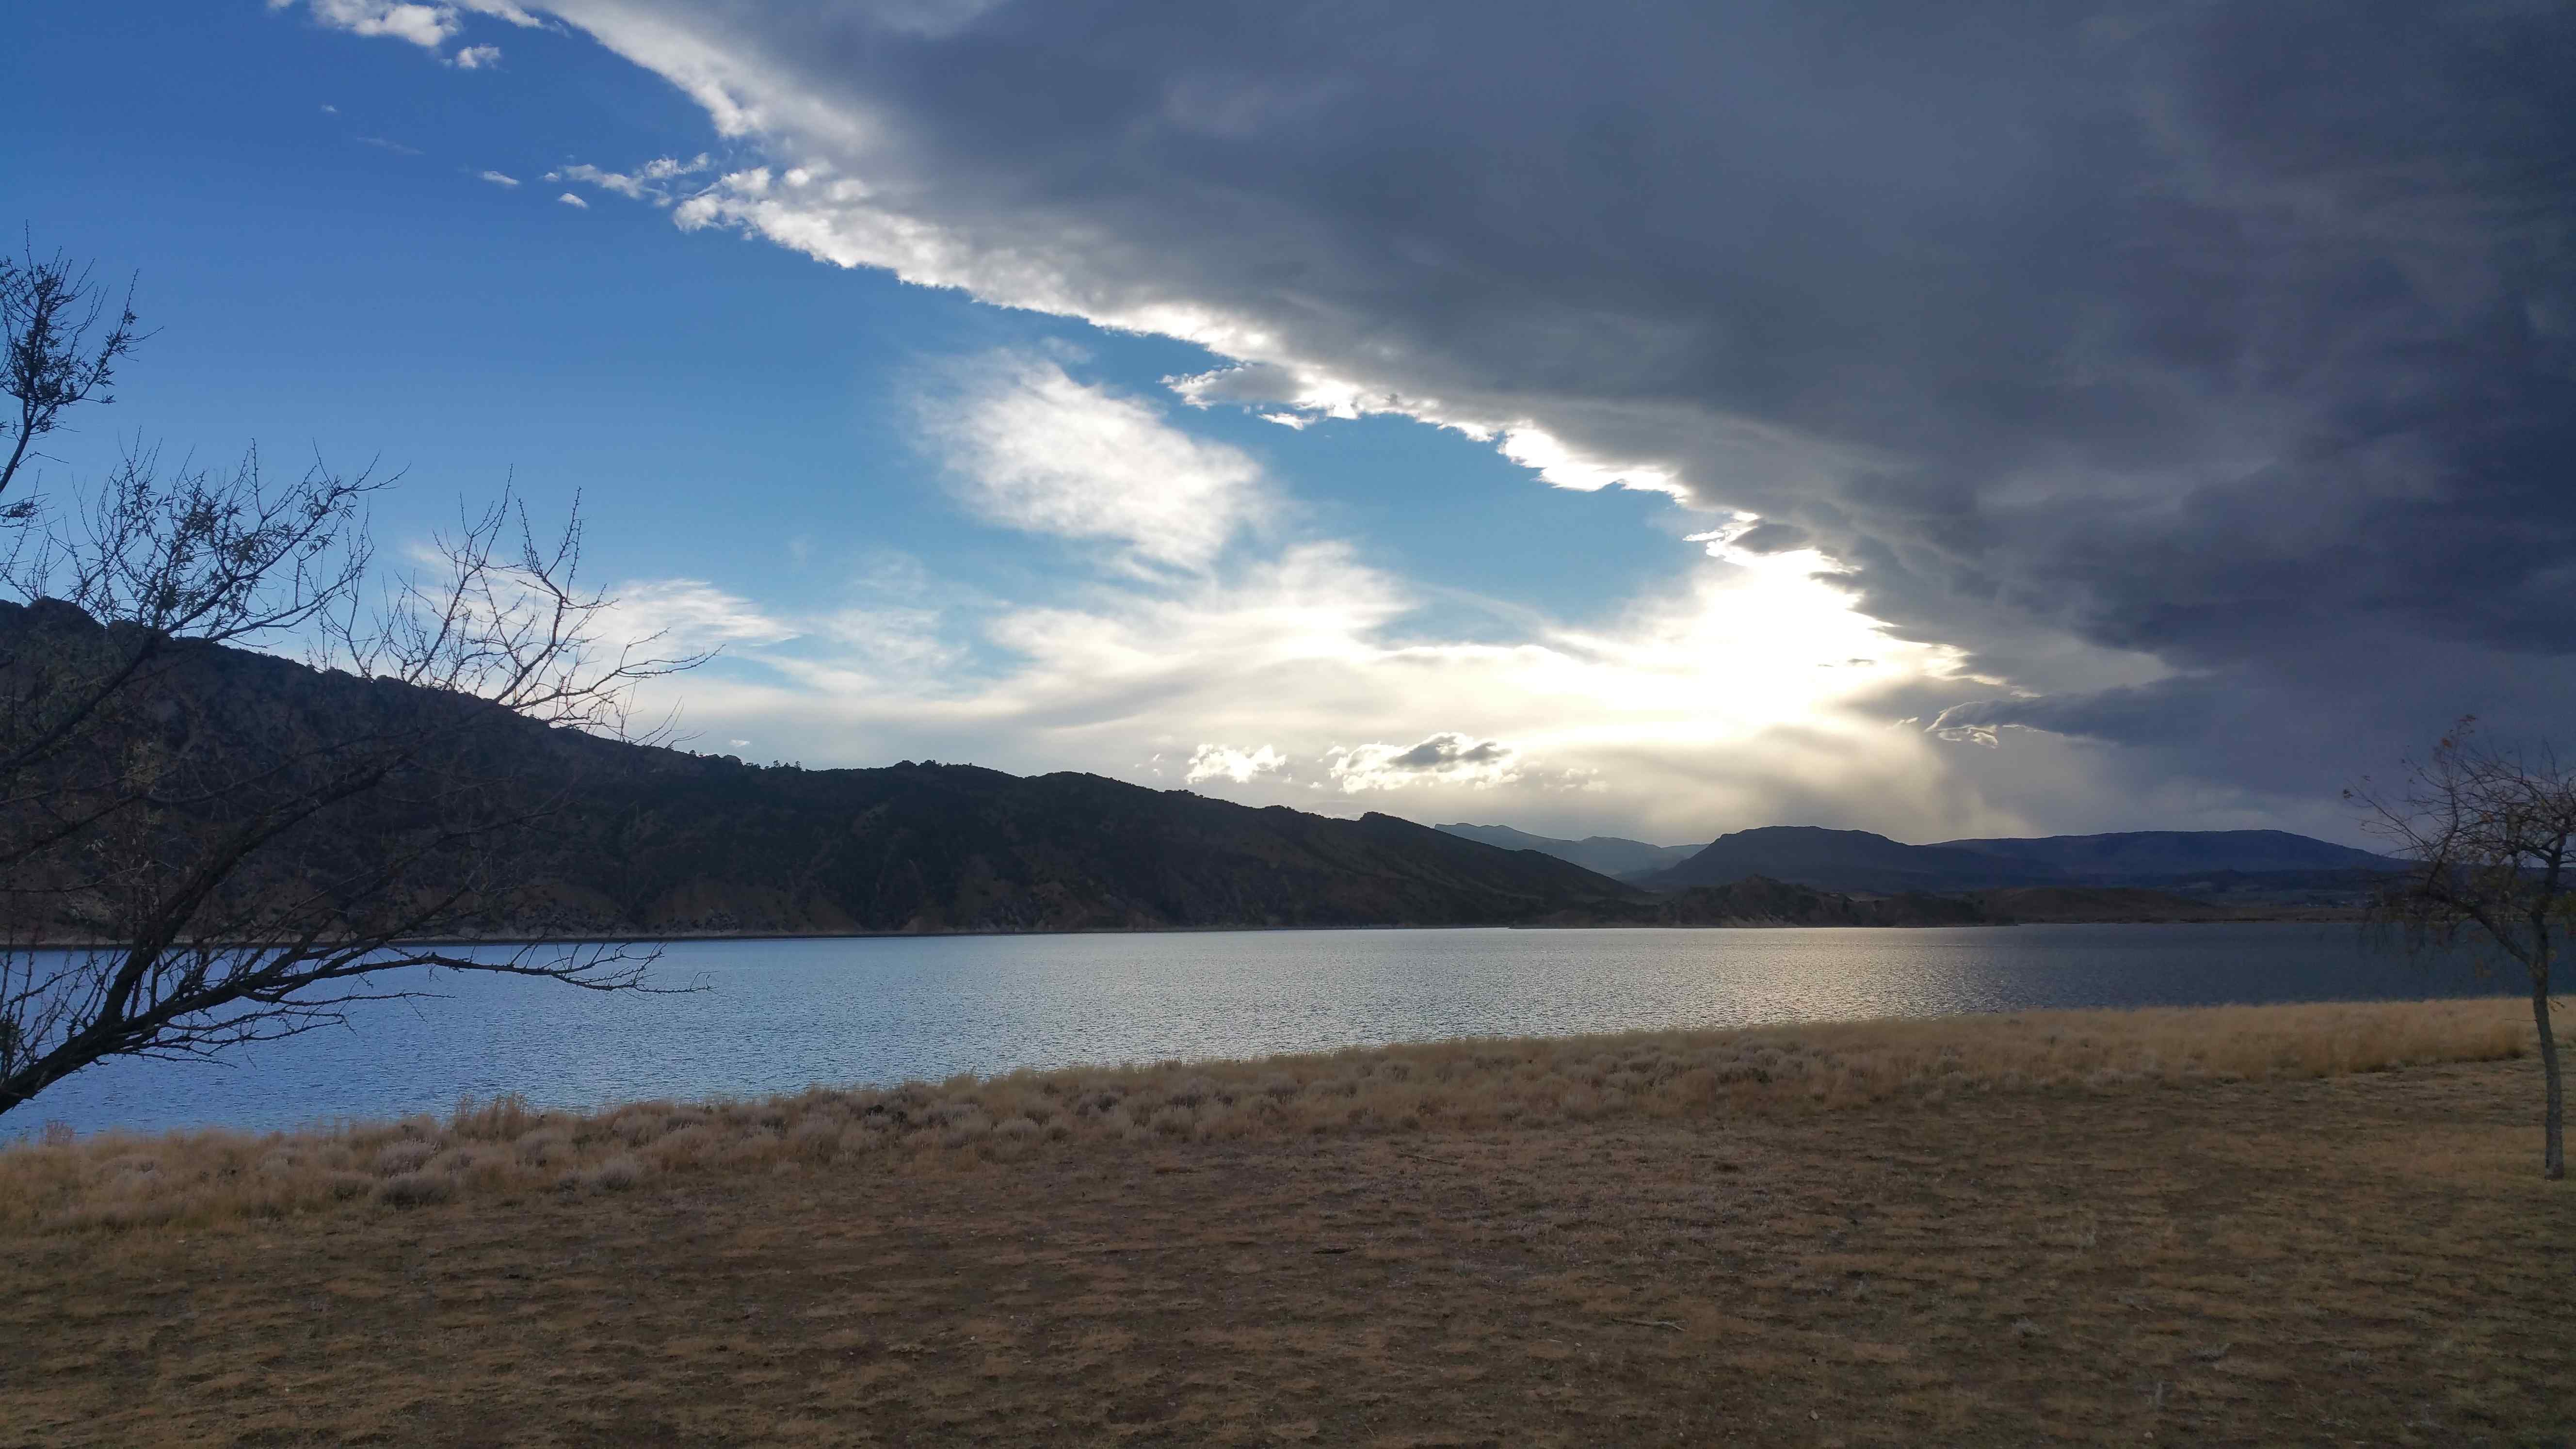 flaming_gorge_departing_storm